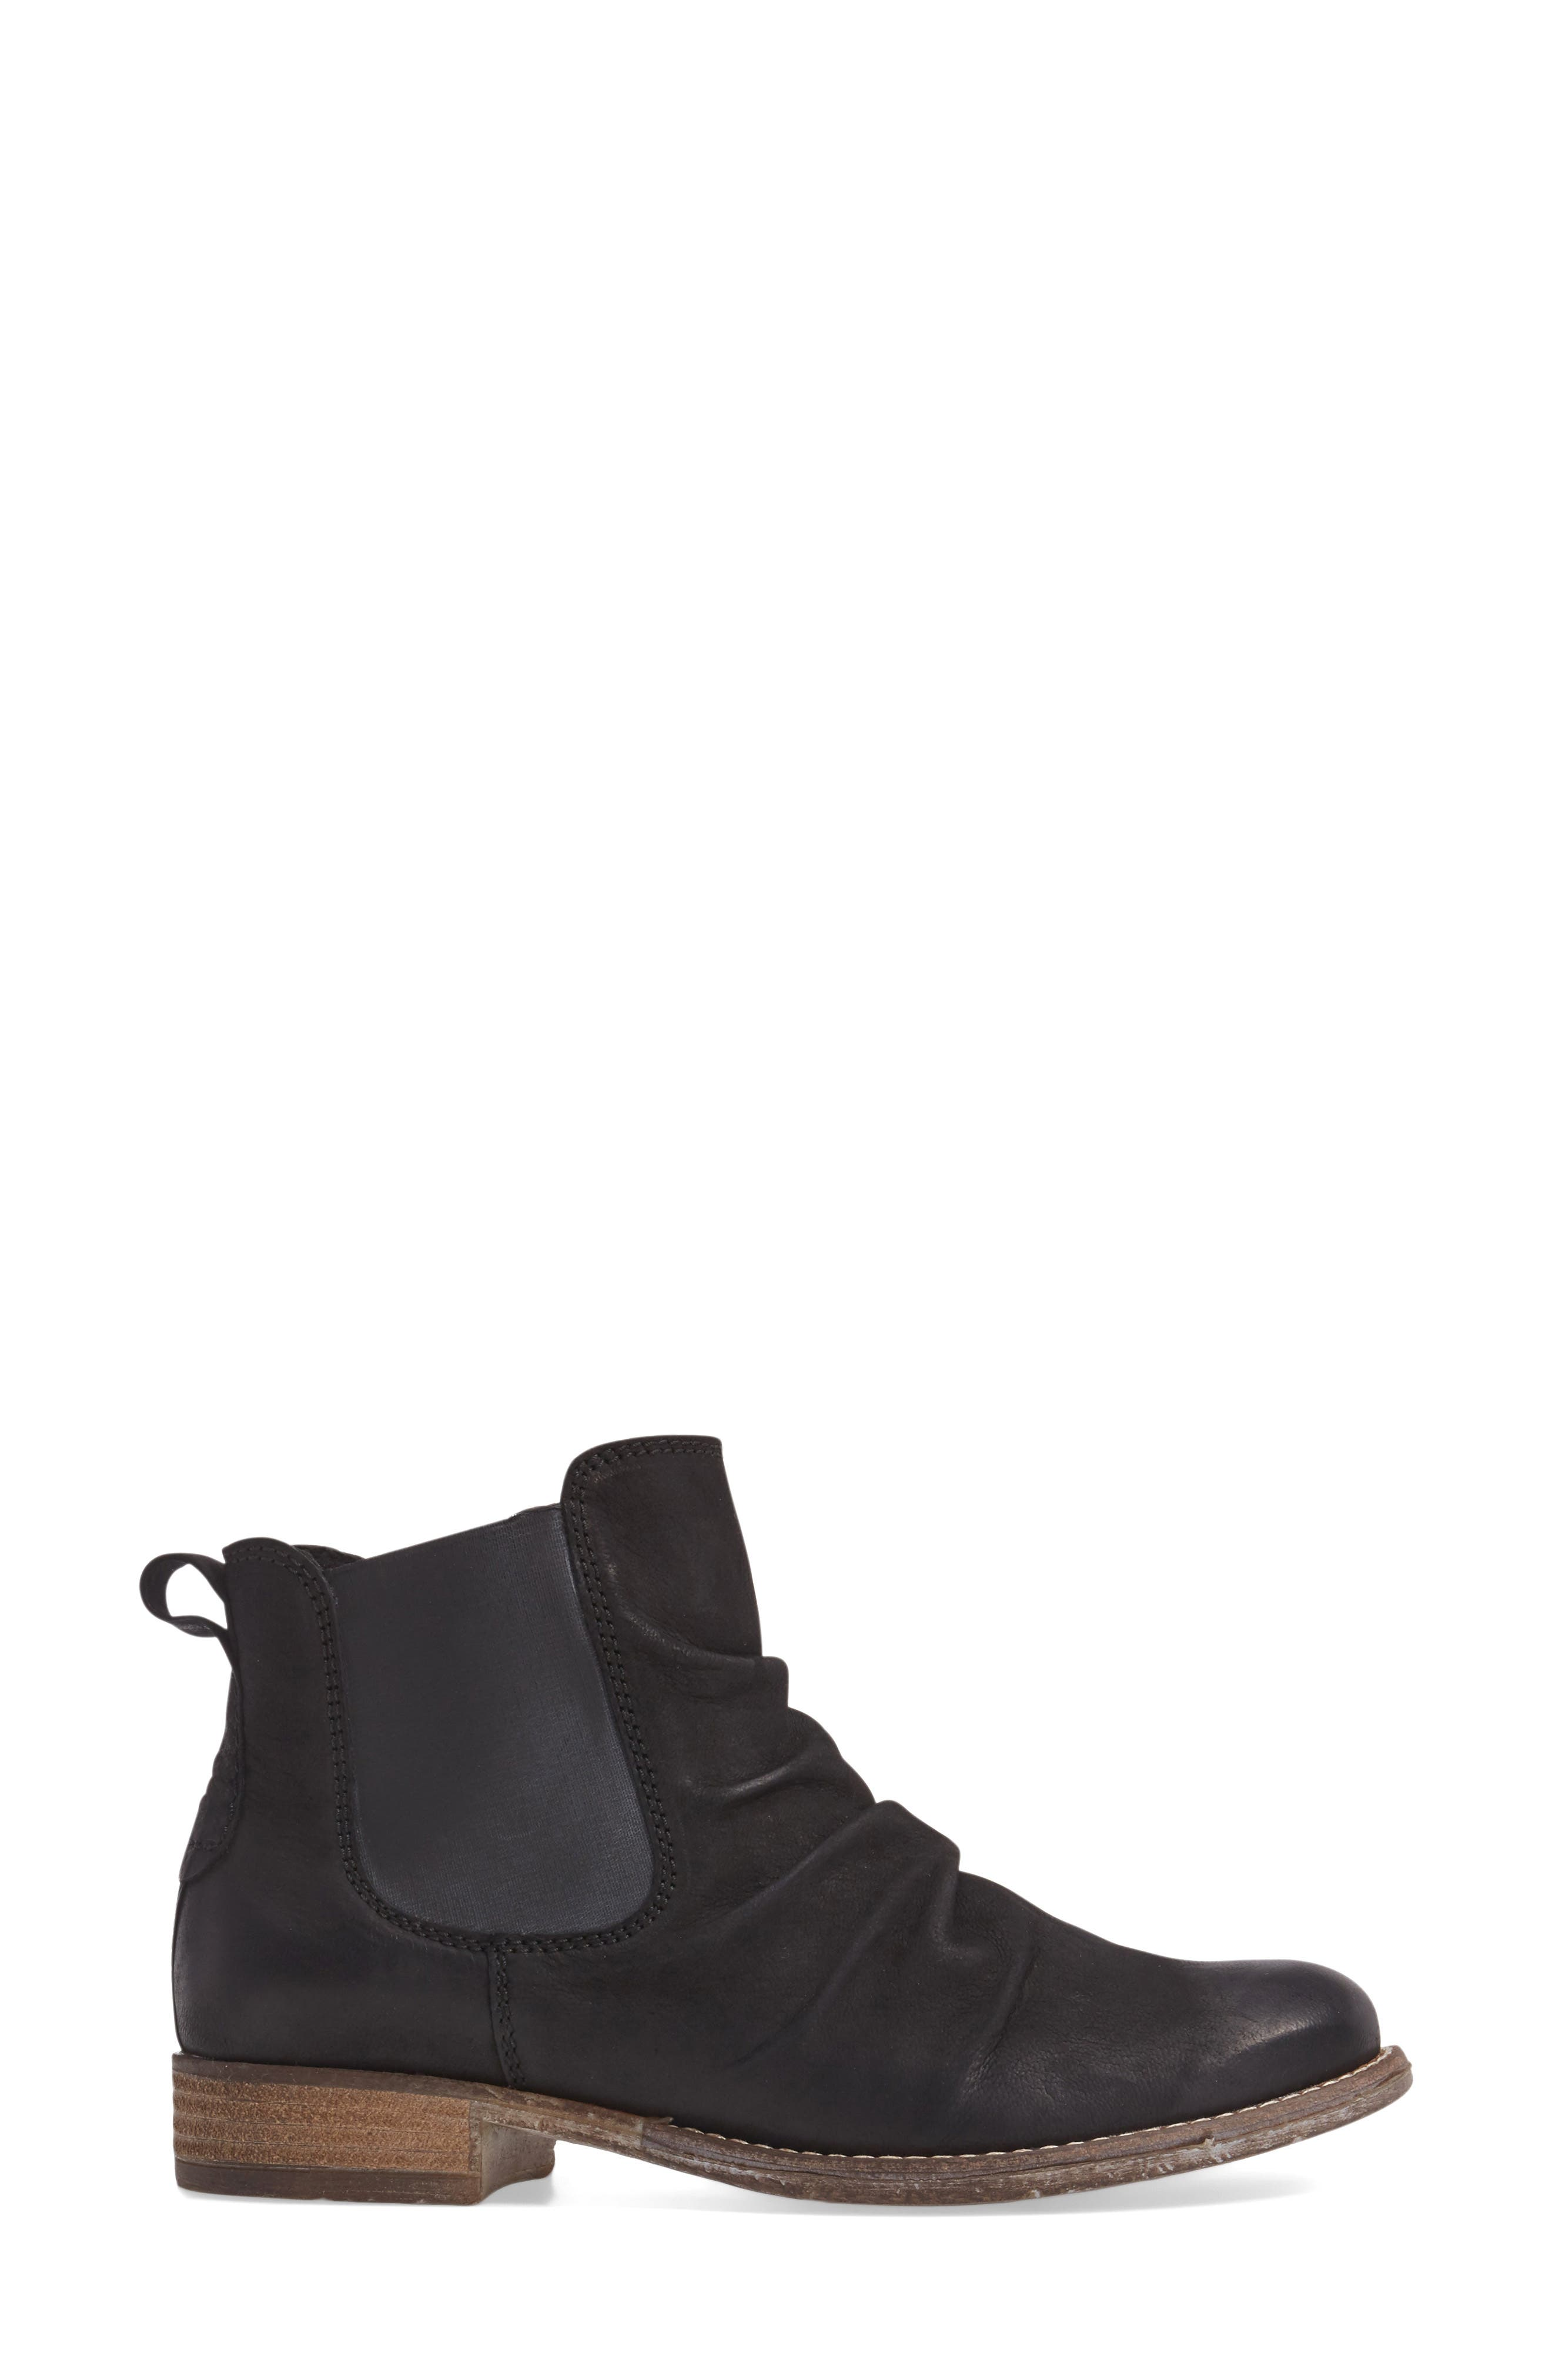 Sienna 59 Slouchy Chelsea Bootie,                             Alternate thumbnail 3, color,                             004